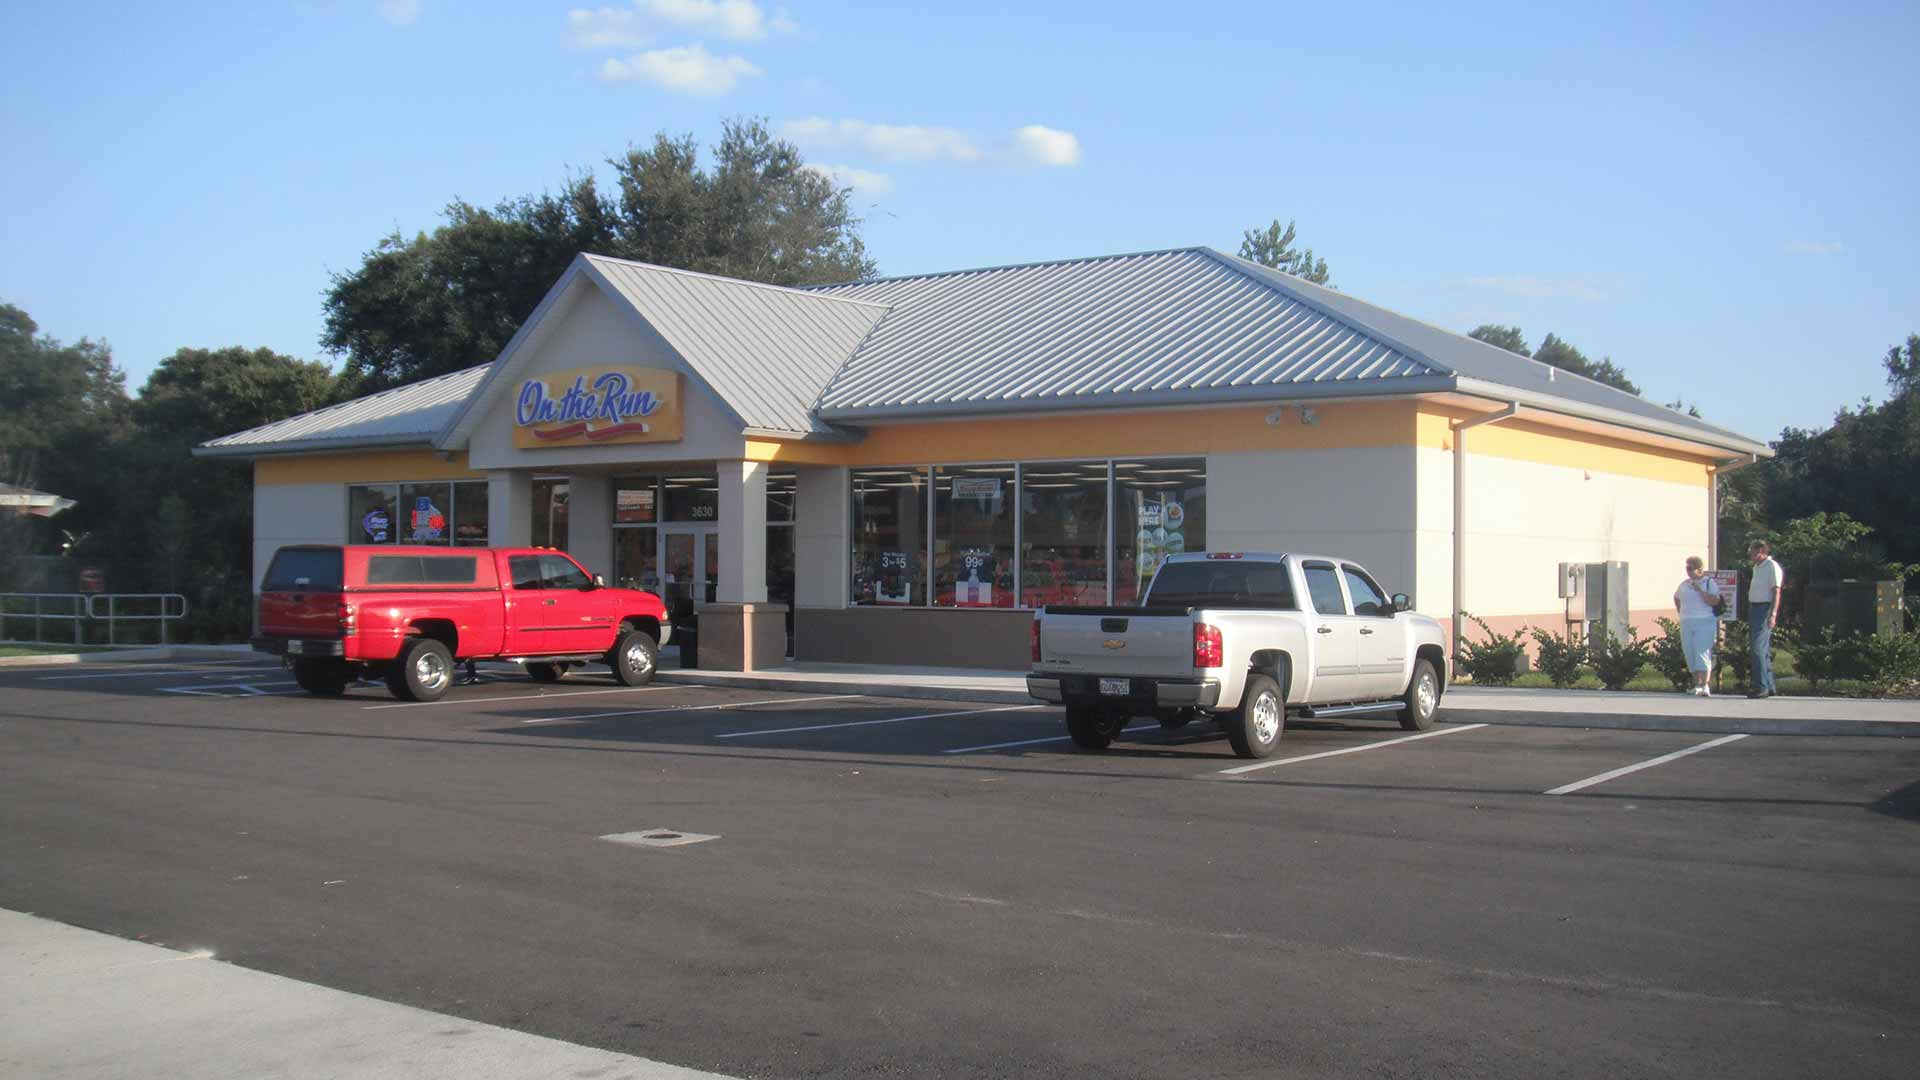 Exterior photo of a recently constructed convenience store.